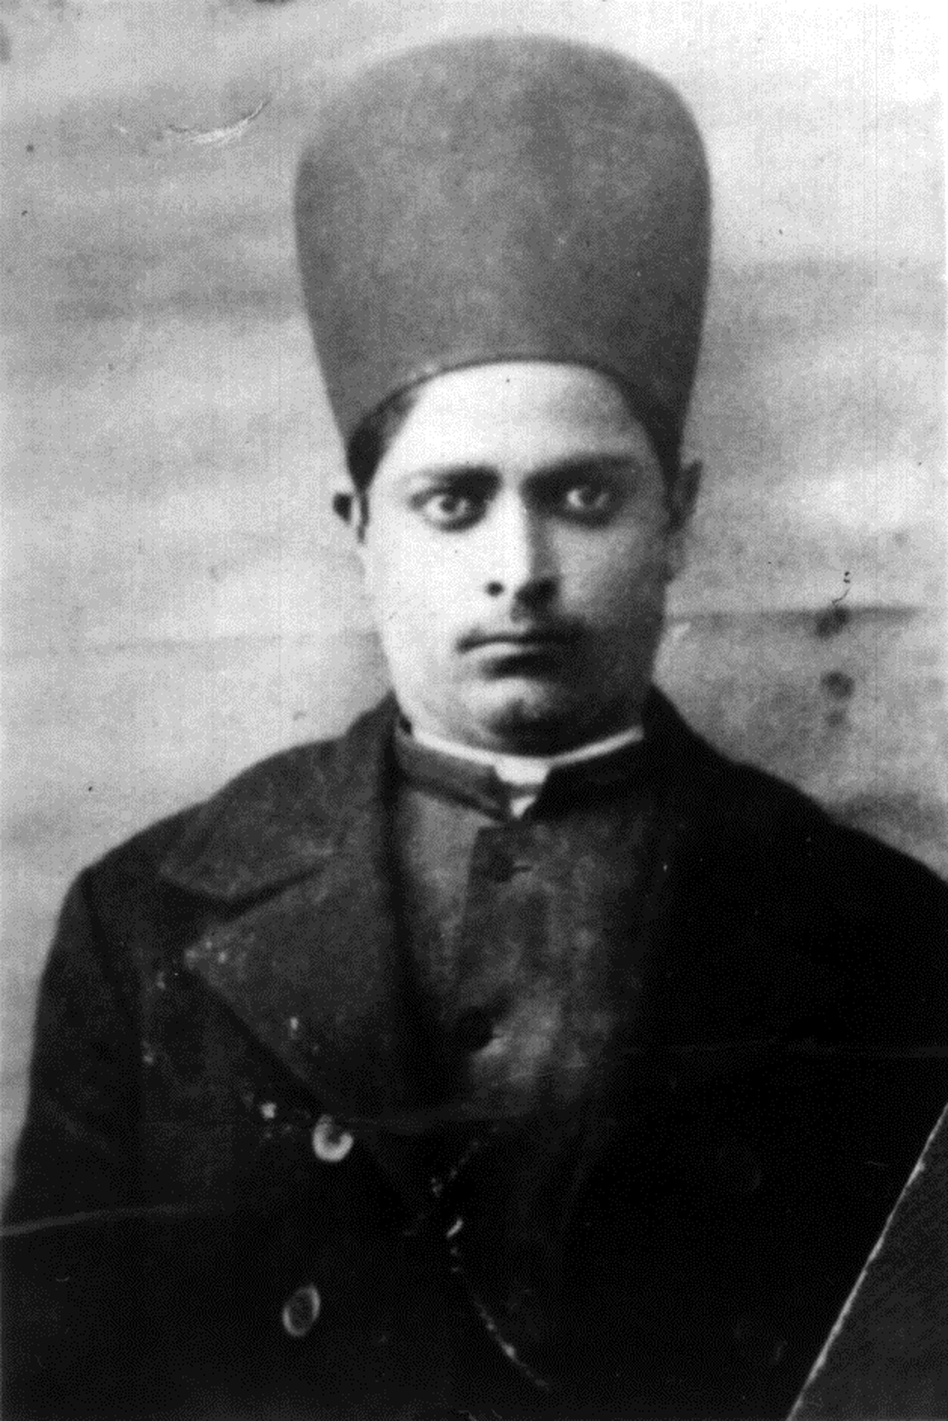 Abol Ghassem Bakhtiar circa 1900, dressed in traditional Bakhtiari garb. Abol's mother died when he was born in the late 1800's. During his childhood, he overcame both smallpox and tetanus. His father, Haji Hassan was often away, leading caravan journeys to Mecca, in Saudi Arabia. The caravan carried objects to be blessed in Mecca for people who could not afford to make the pilgrimage themselves.